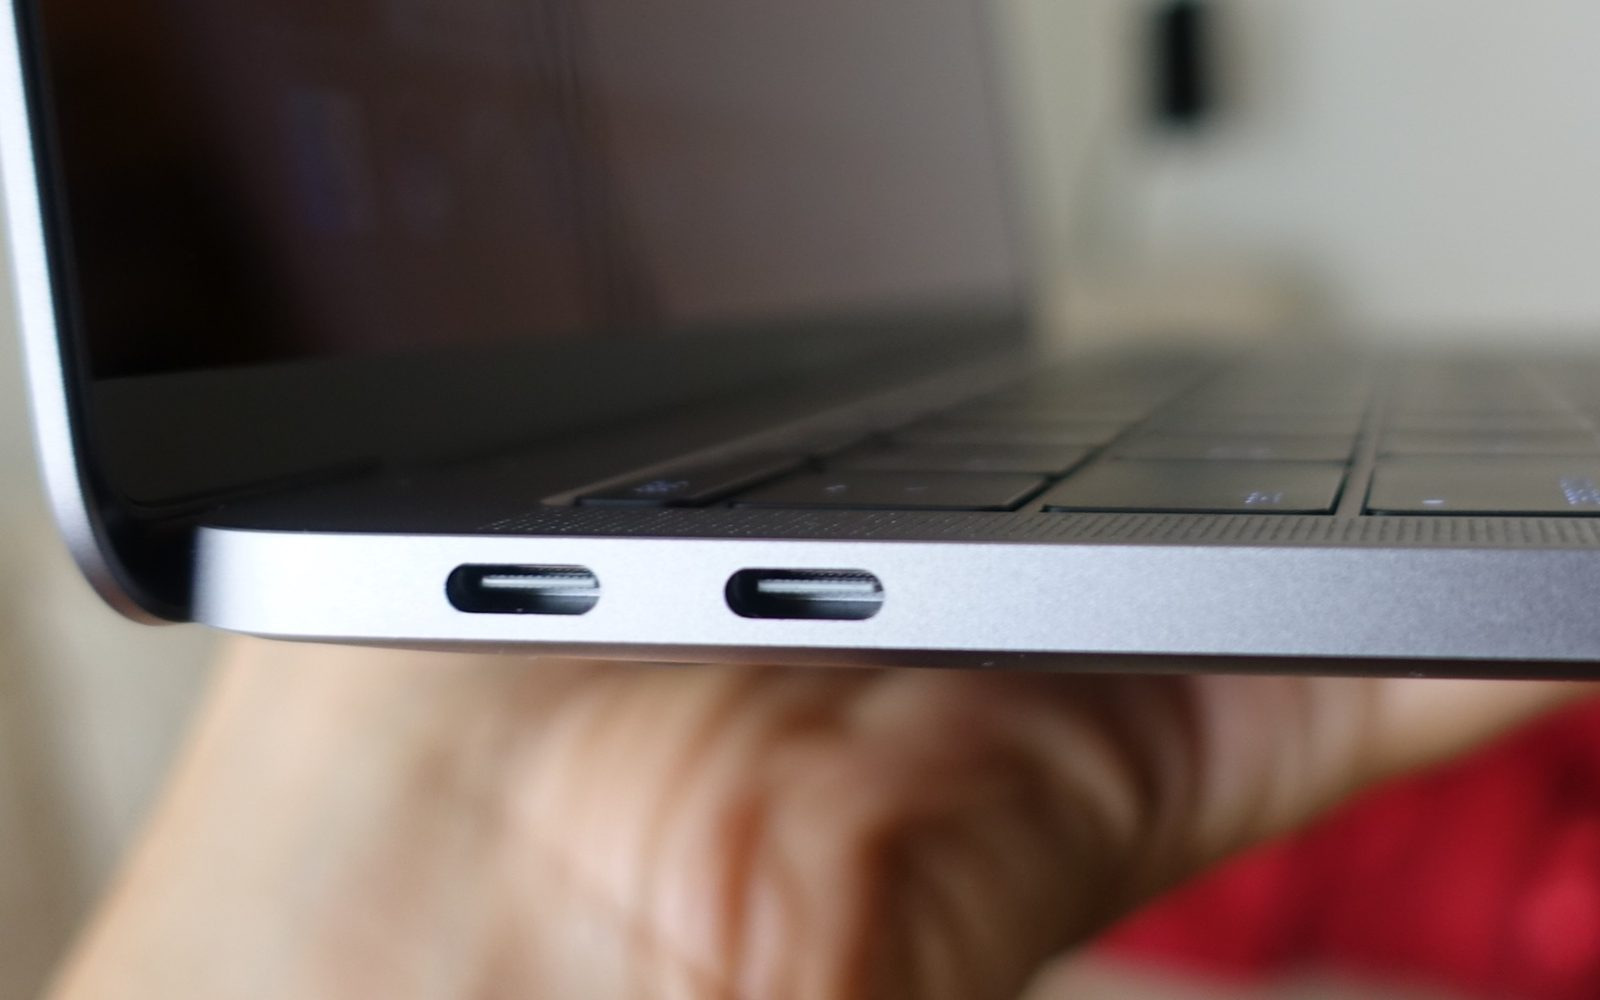 Opinion: No SD Card slot? It's the camera companies you should be